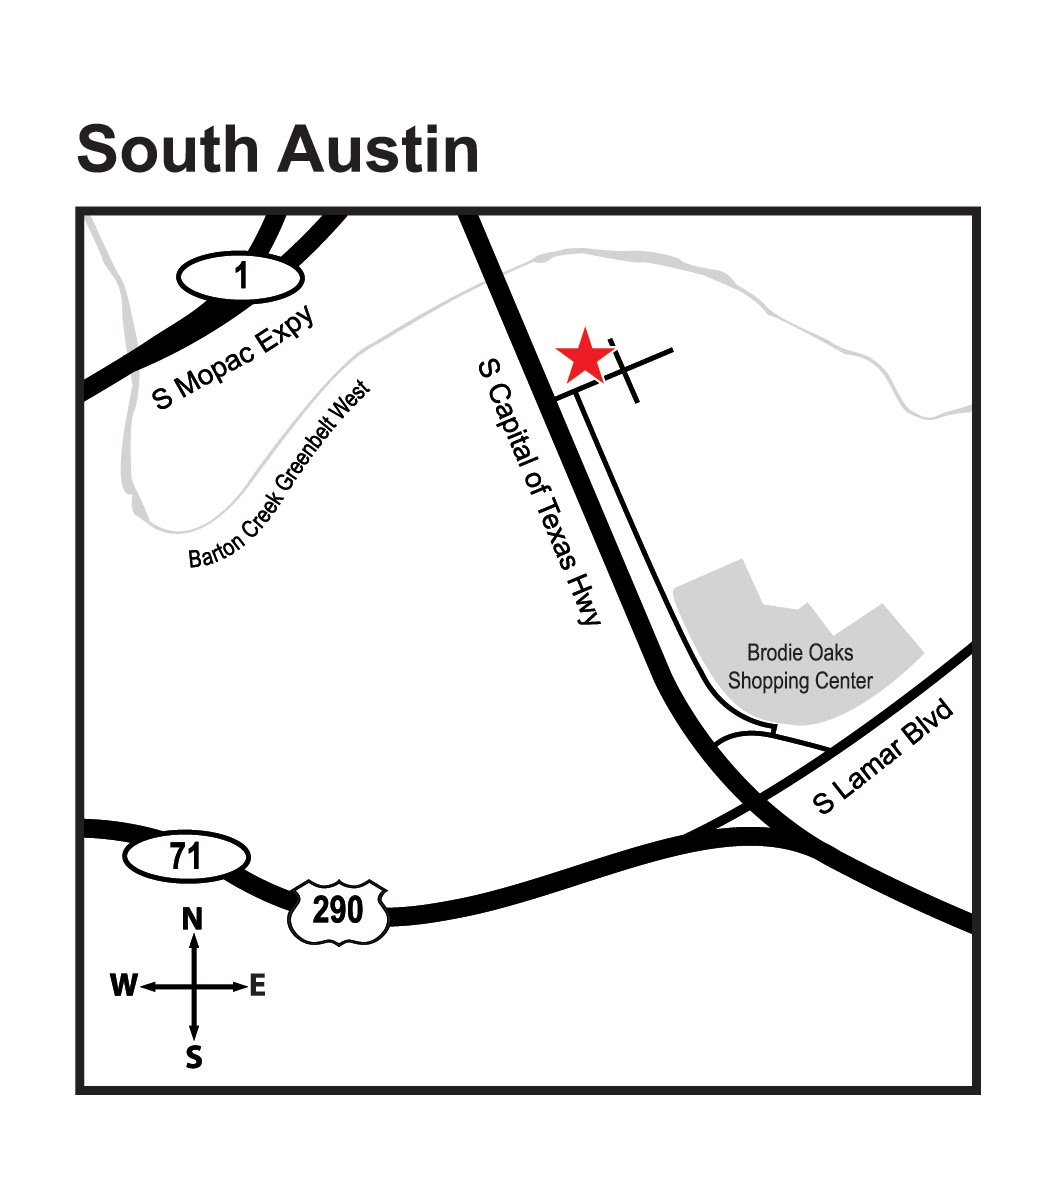 Texas Orthopedics New South Austin Office Opens Wednesday